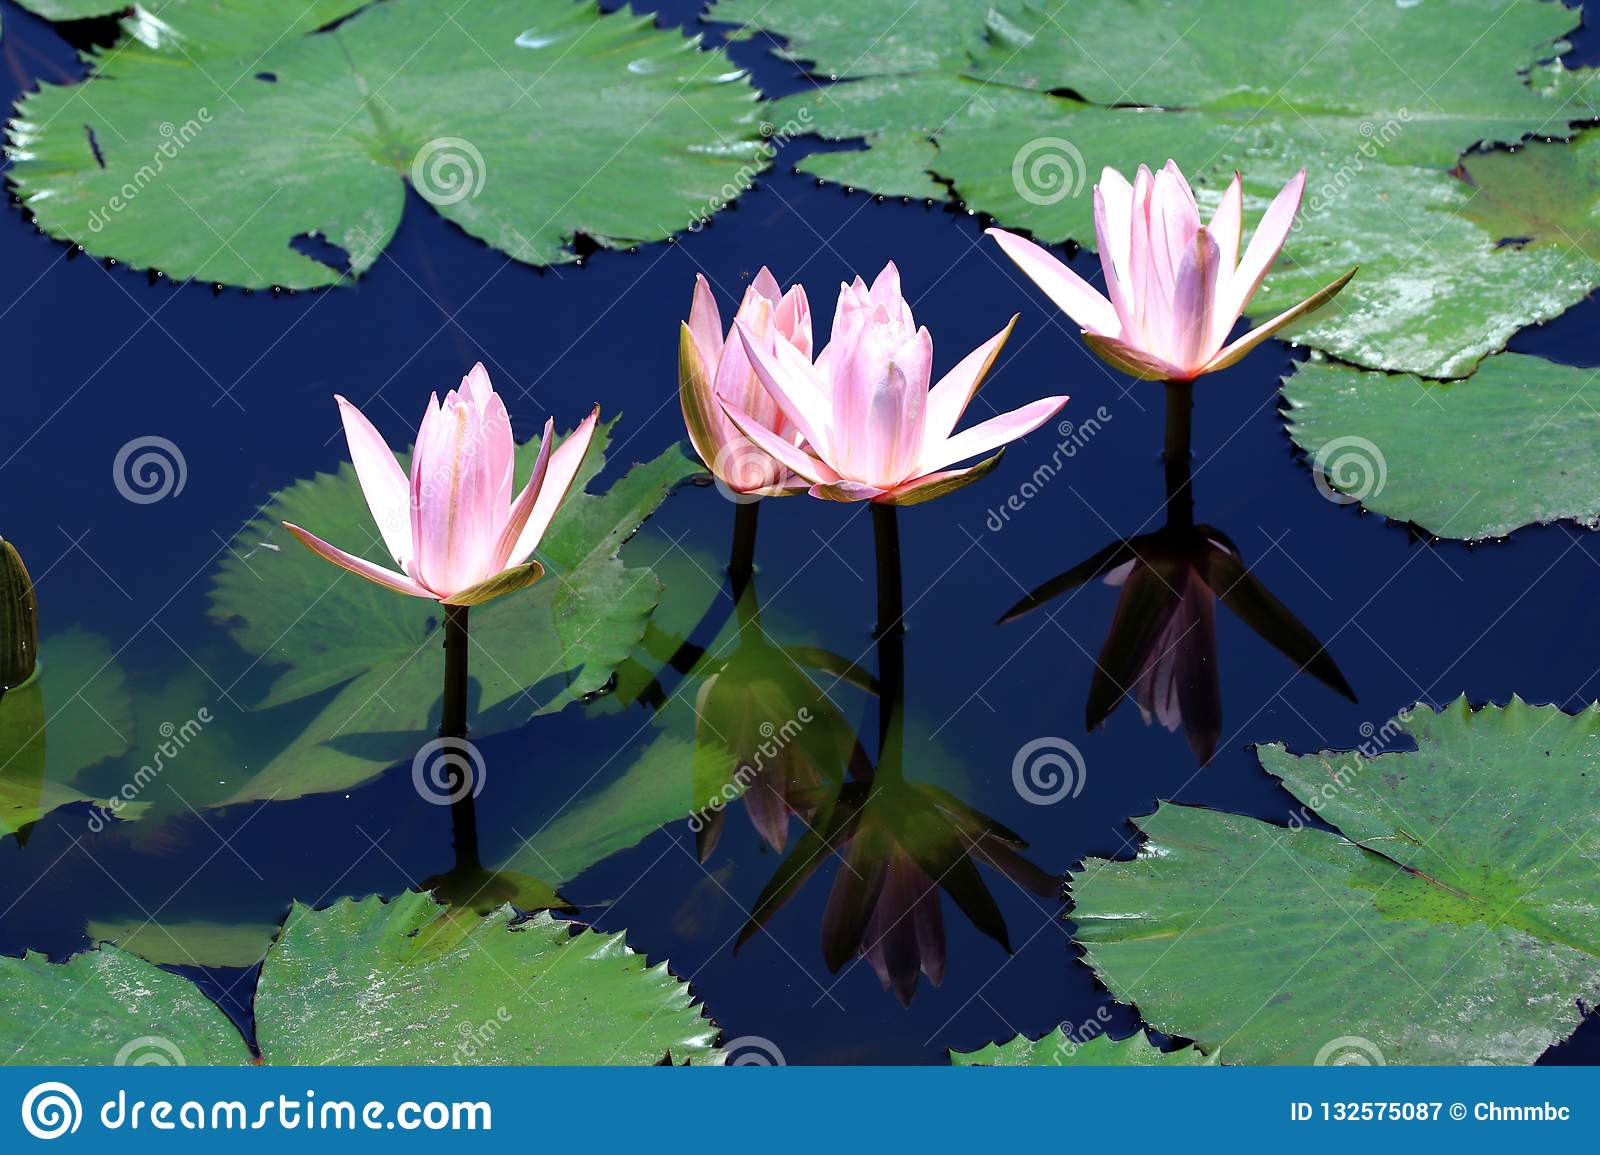 Water lilies in the pond - Bali Asia